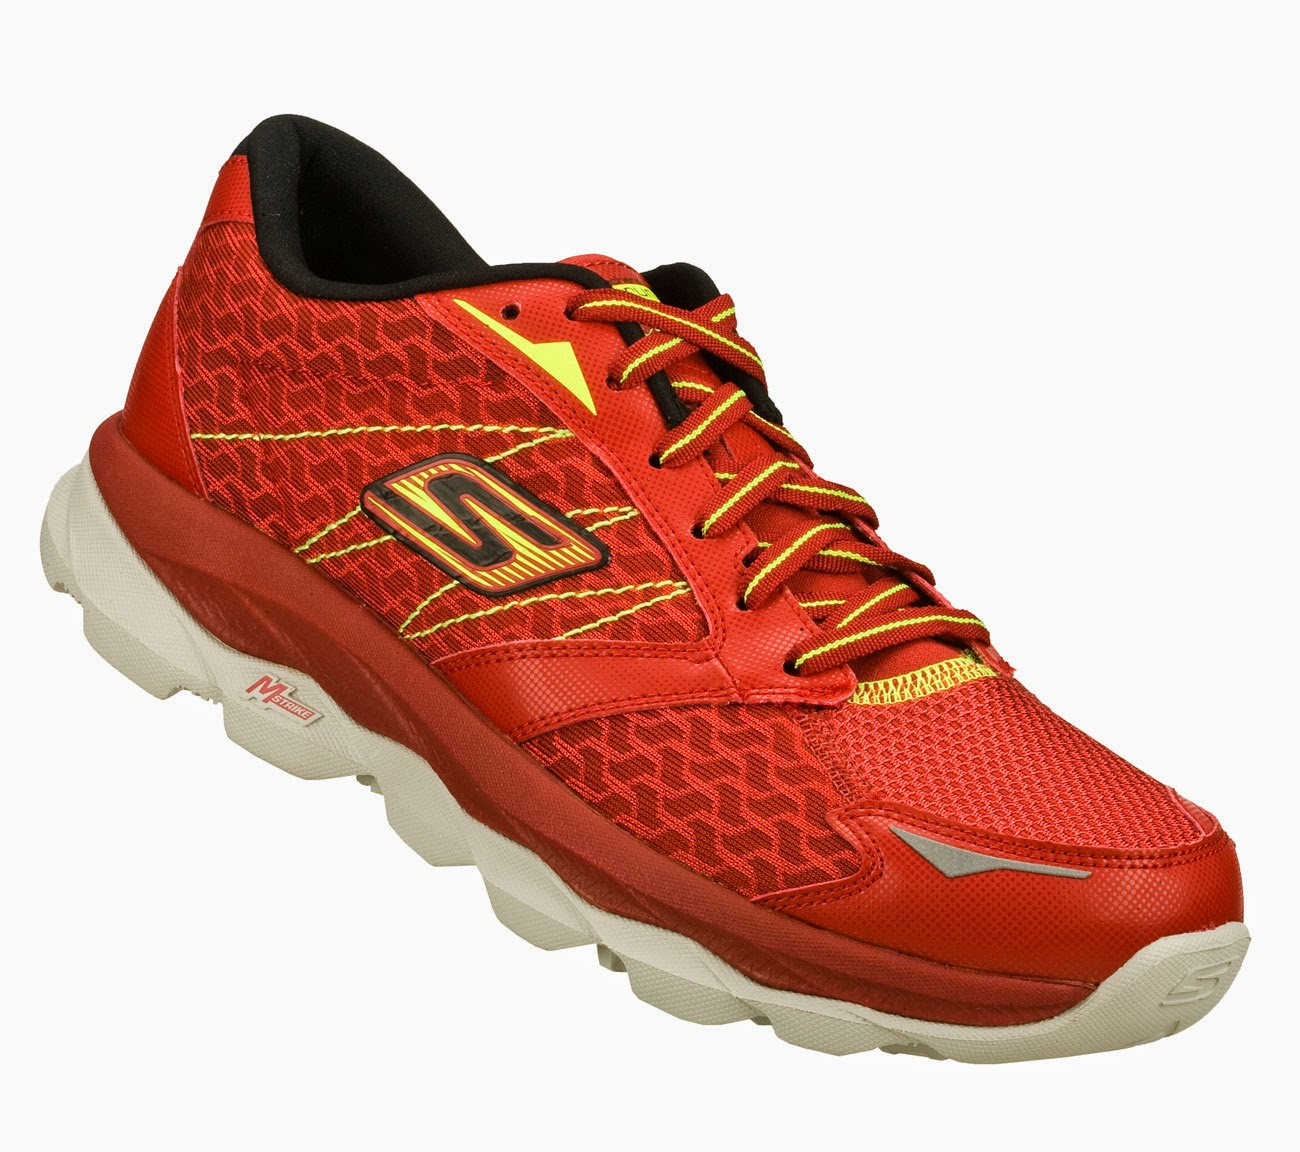 skechers gorun ultra analisis opinion